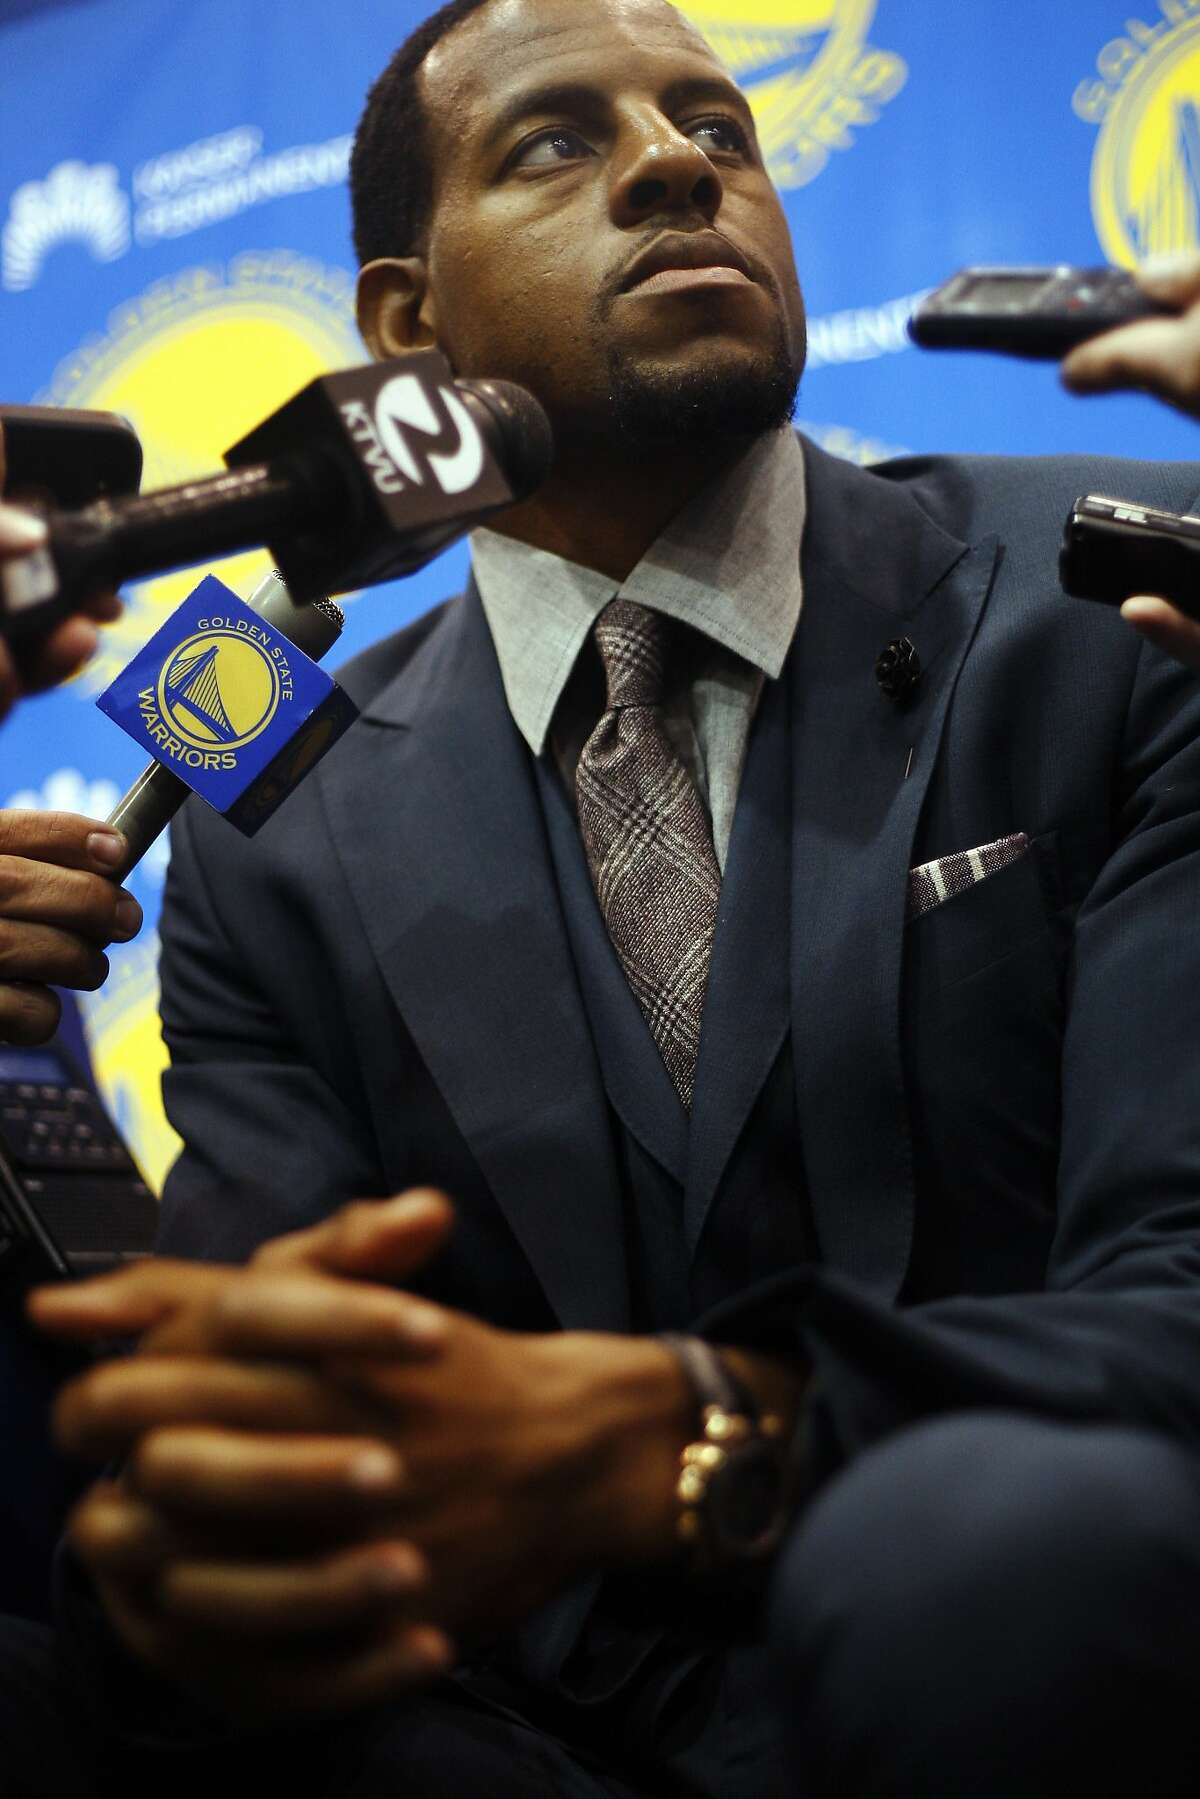 Golden State Warriors latest big acquisition, Andre Igoubdala, takes questions from the media at a press conference at Warriors headquarters On Thursday, July 11, 2013 in Oakland, Calif. Igoubdala was a brilliant addition to a Warriors team that was defeated in the Western Conference Finals by The San Antonio Spurs in this years NBA playoffs.